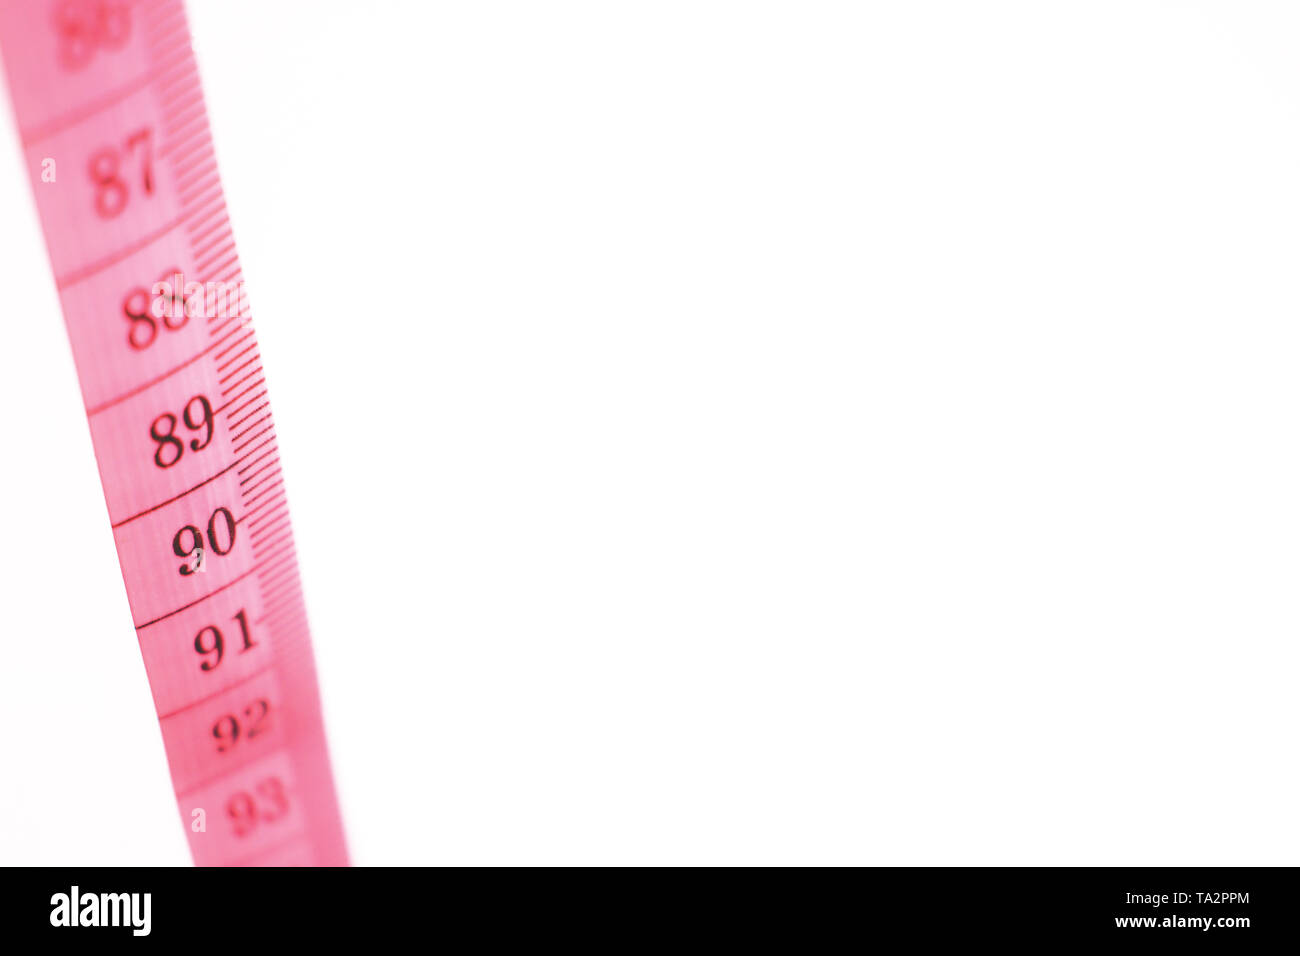 Pink Tape Measure - Stock Image